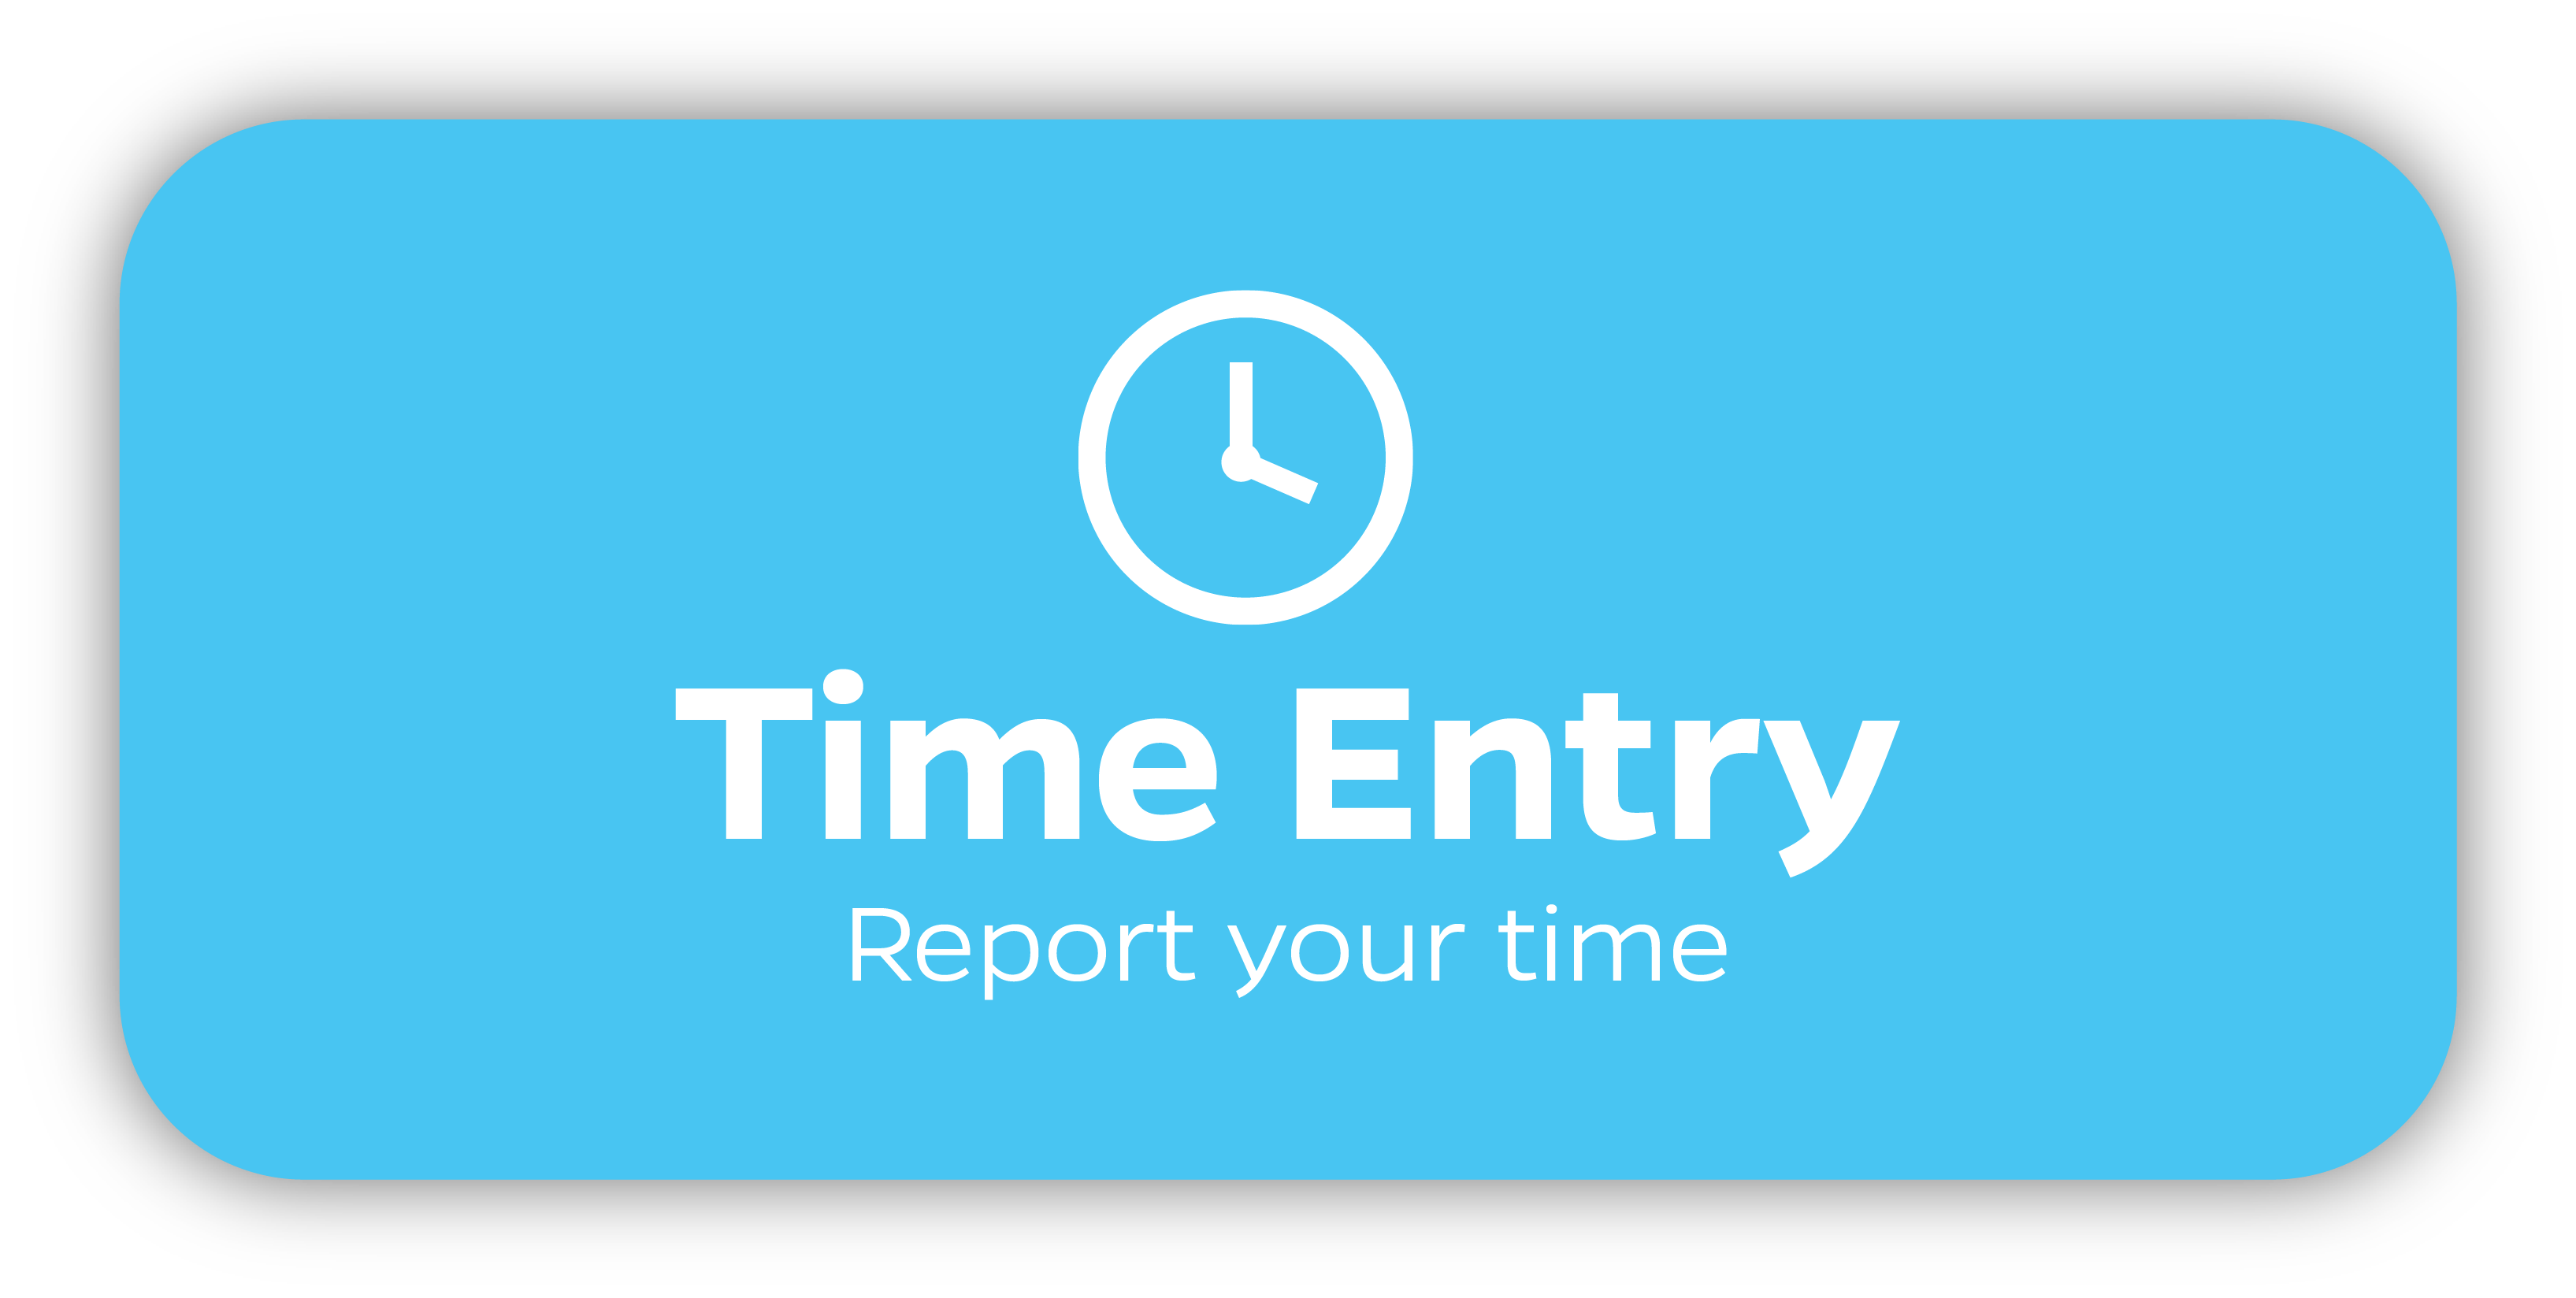 Time Entry